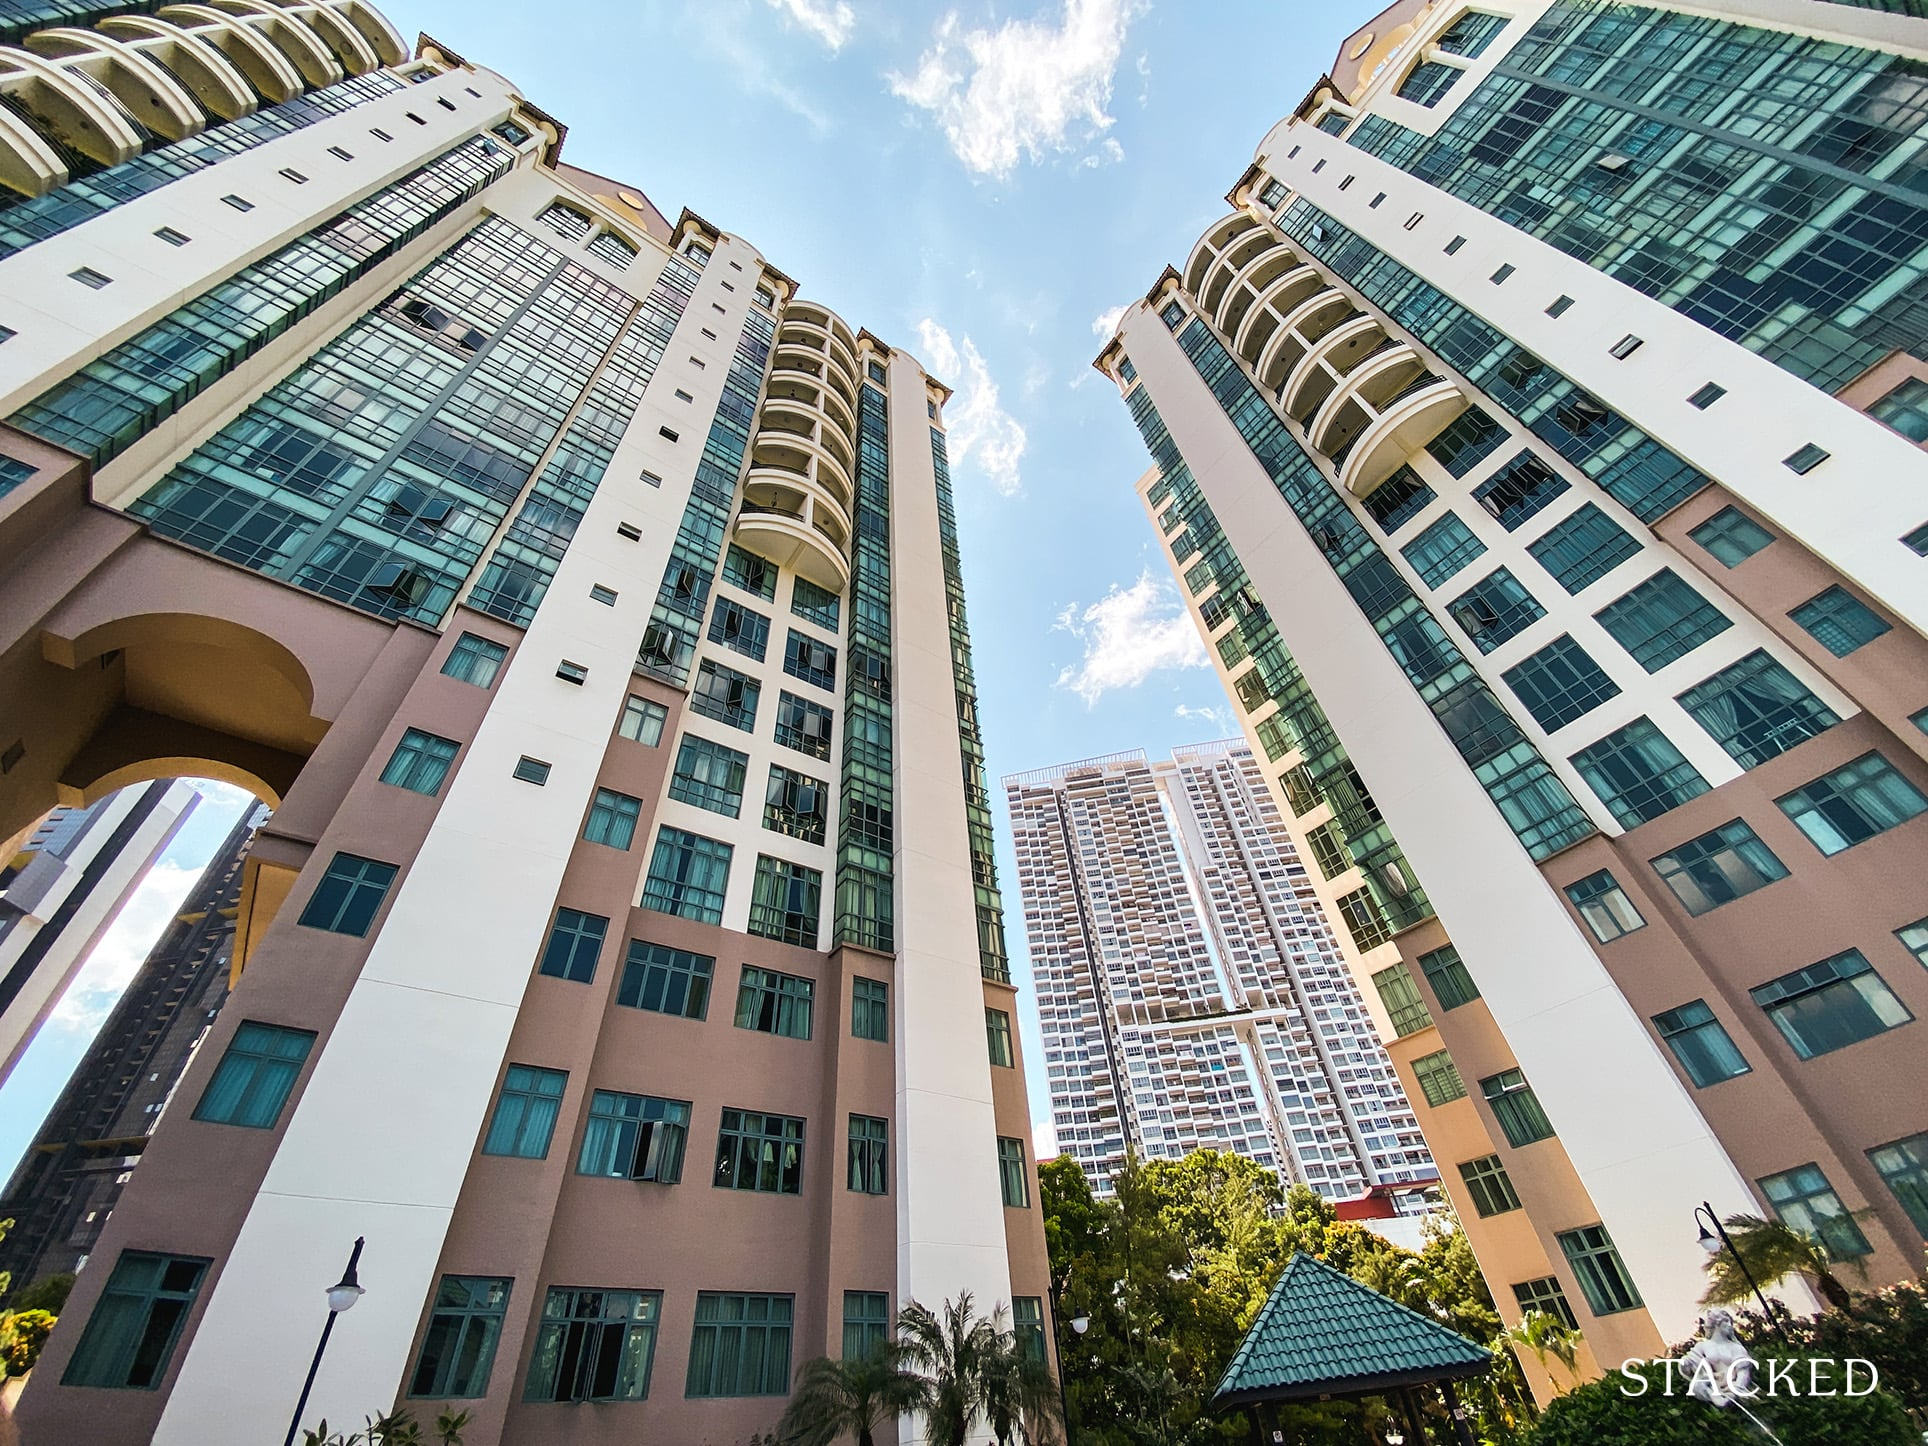 Tanglin regency towers